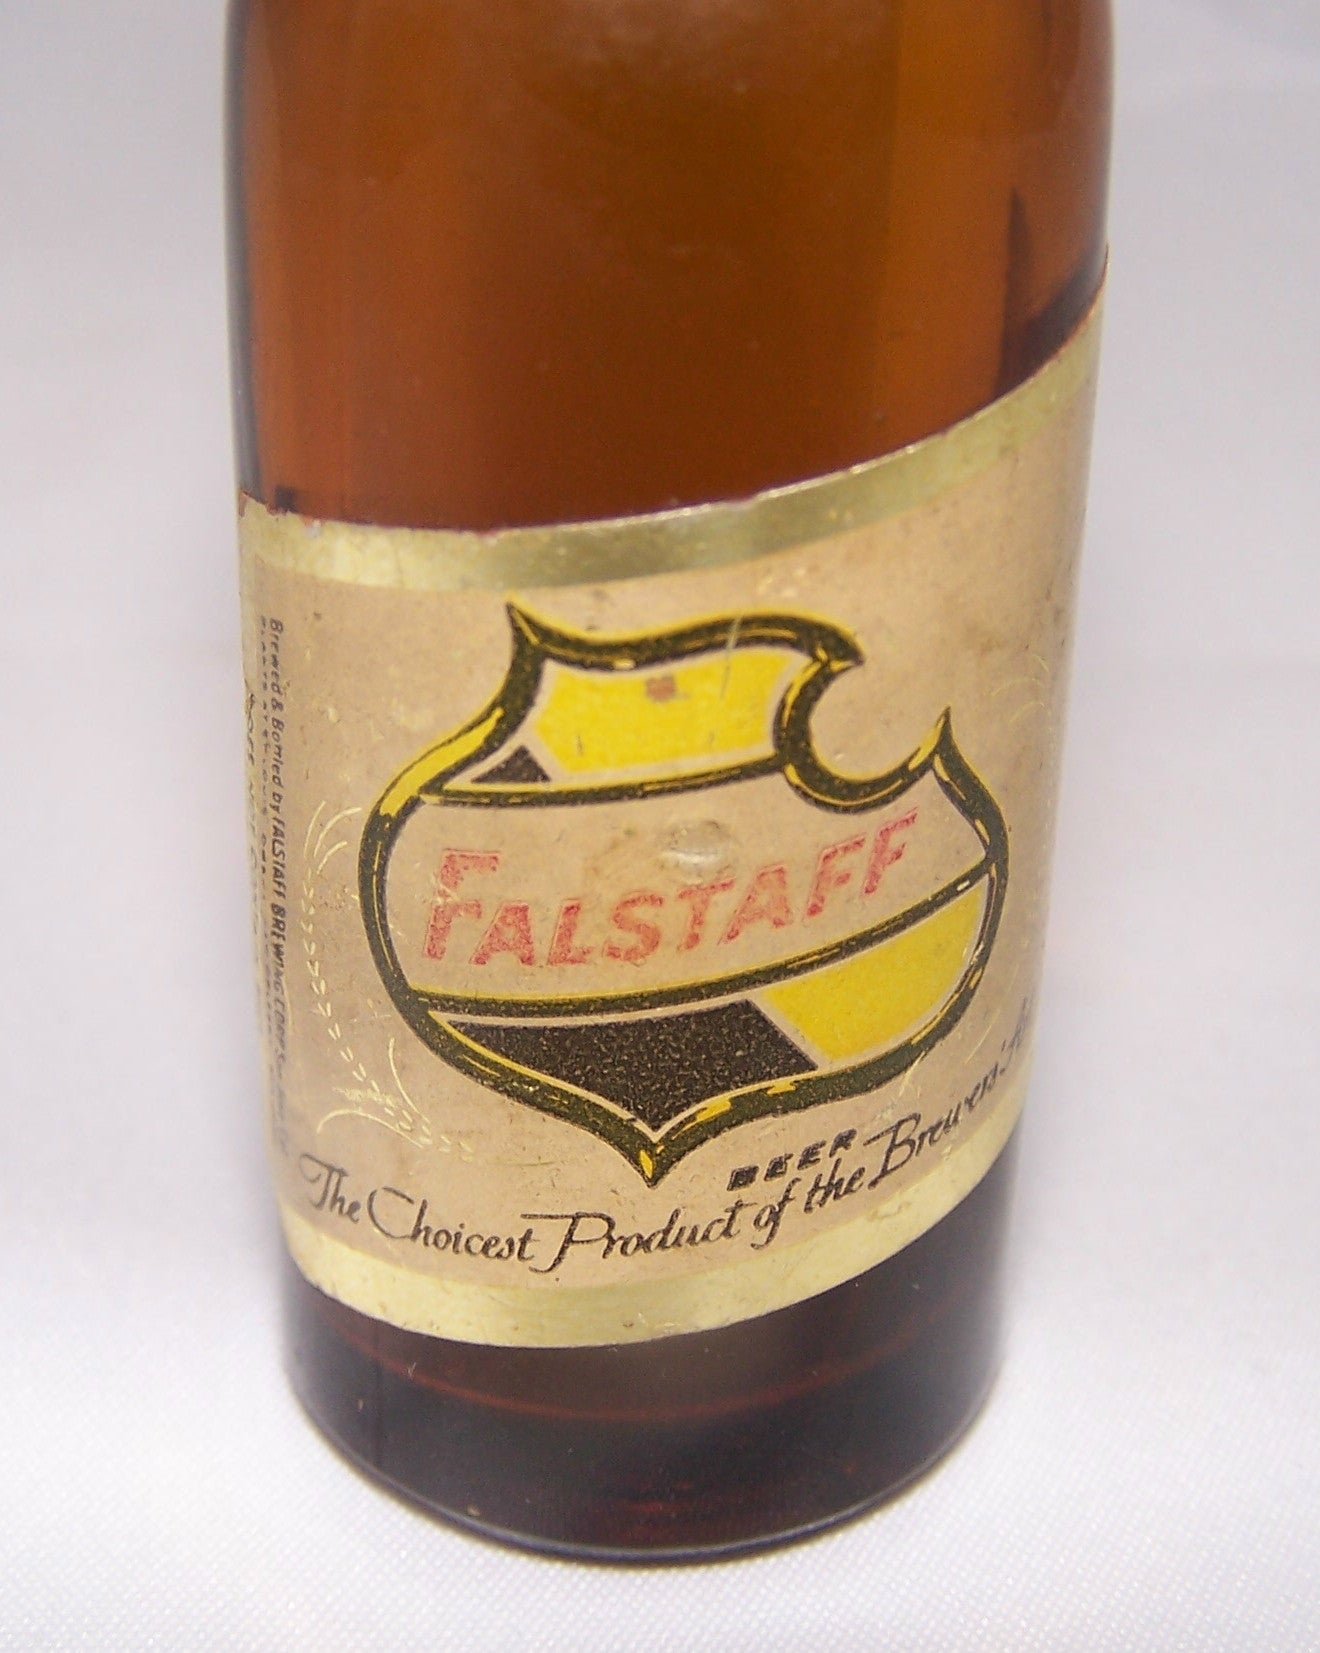 Falstaff mini bottle